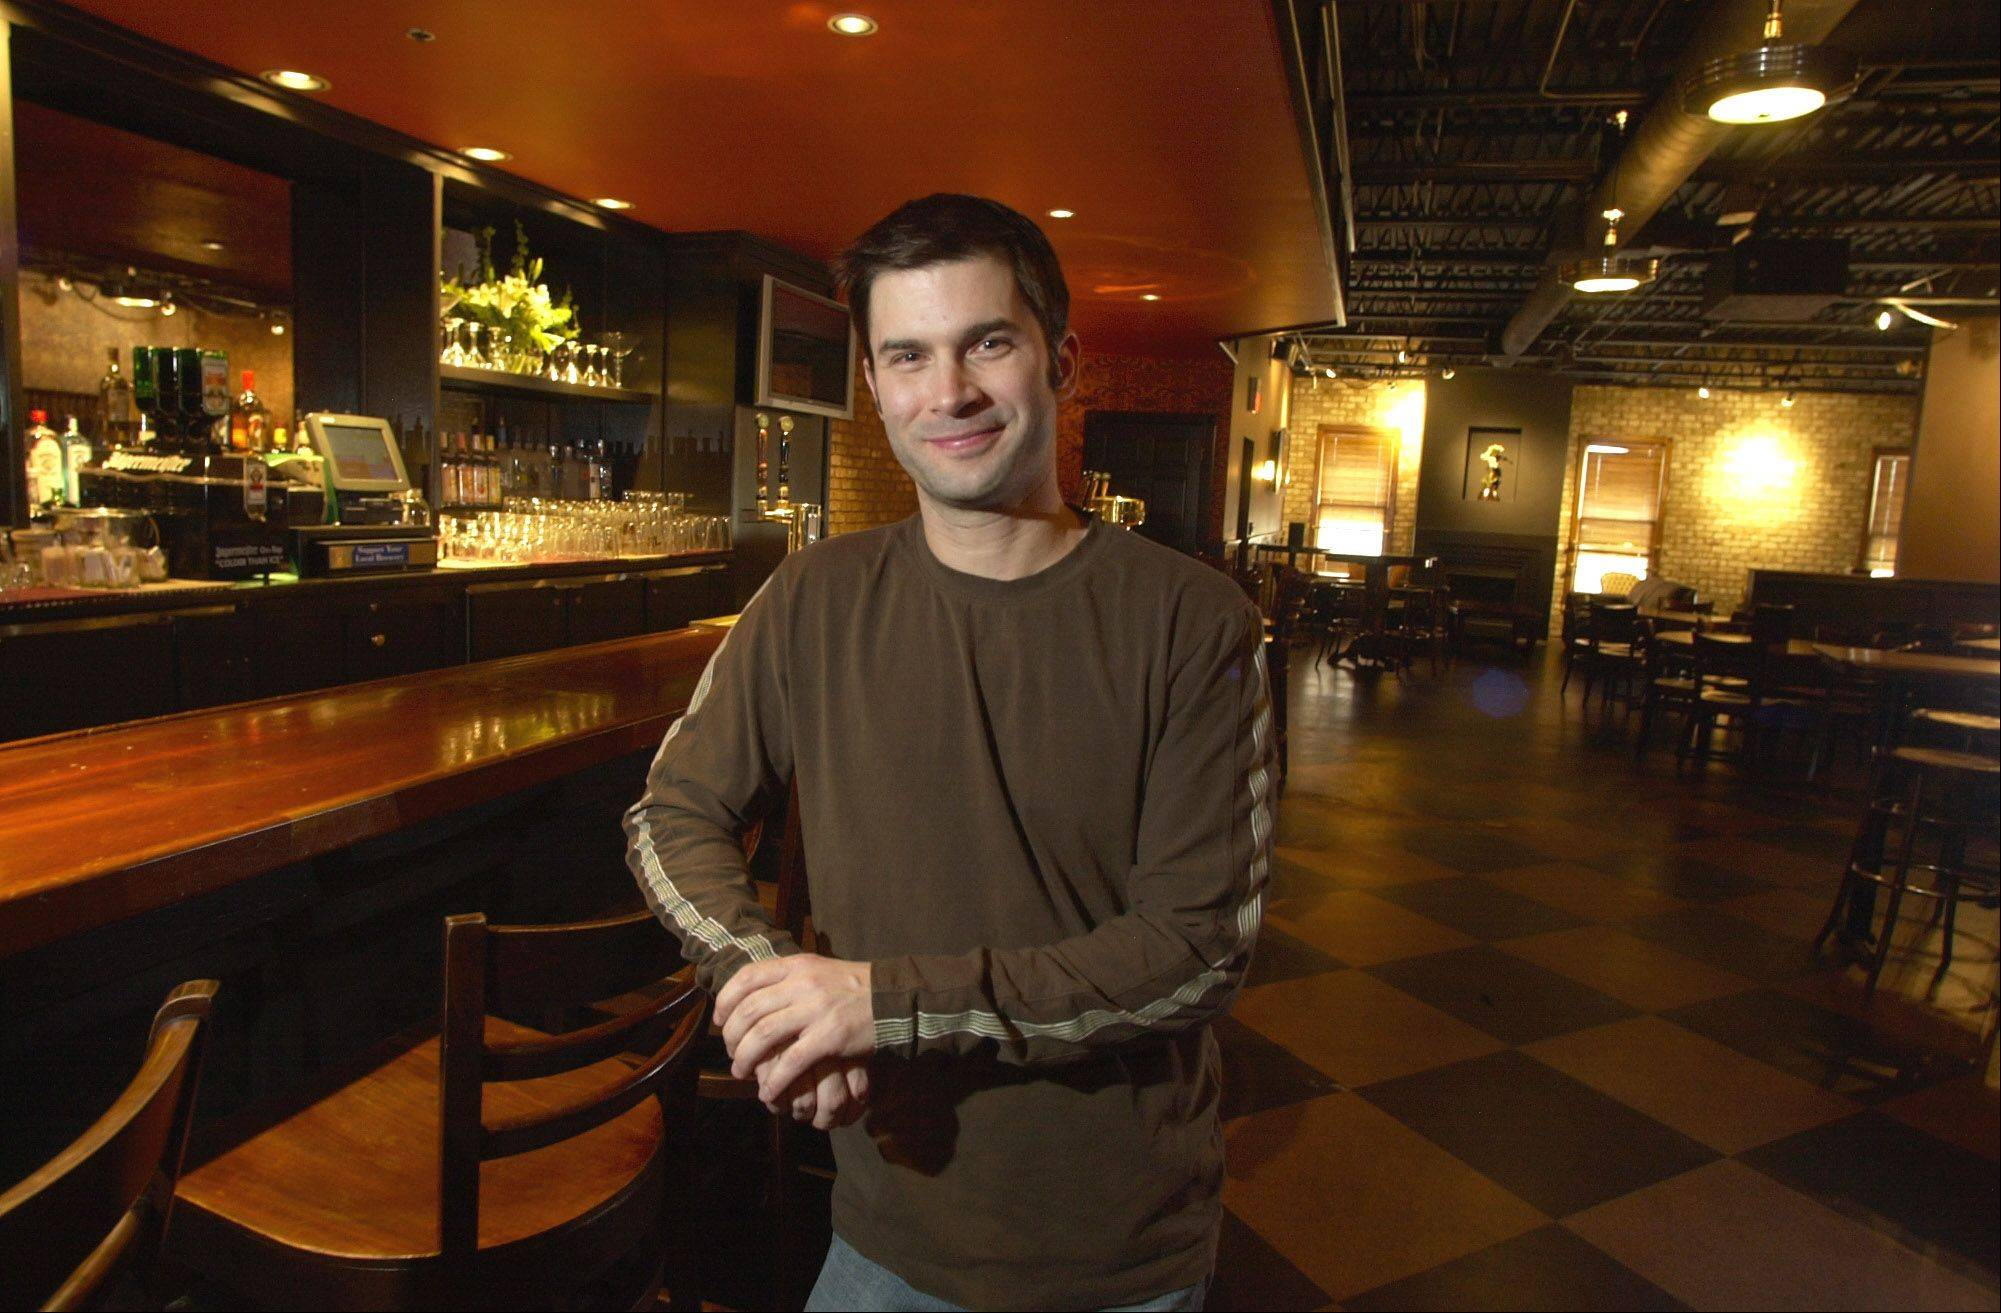 This serene moment for Mickey Finn's owner Brian Grano won't last long. Thanksgiving Eve is one of the busiest bar nights of the year for the Libertyville brew pub, which releases its popular Santa's Magic beer on the Friday after the holiday.